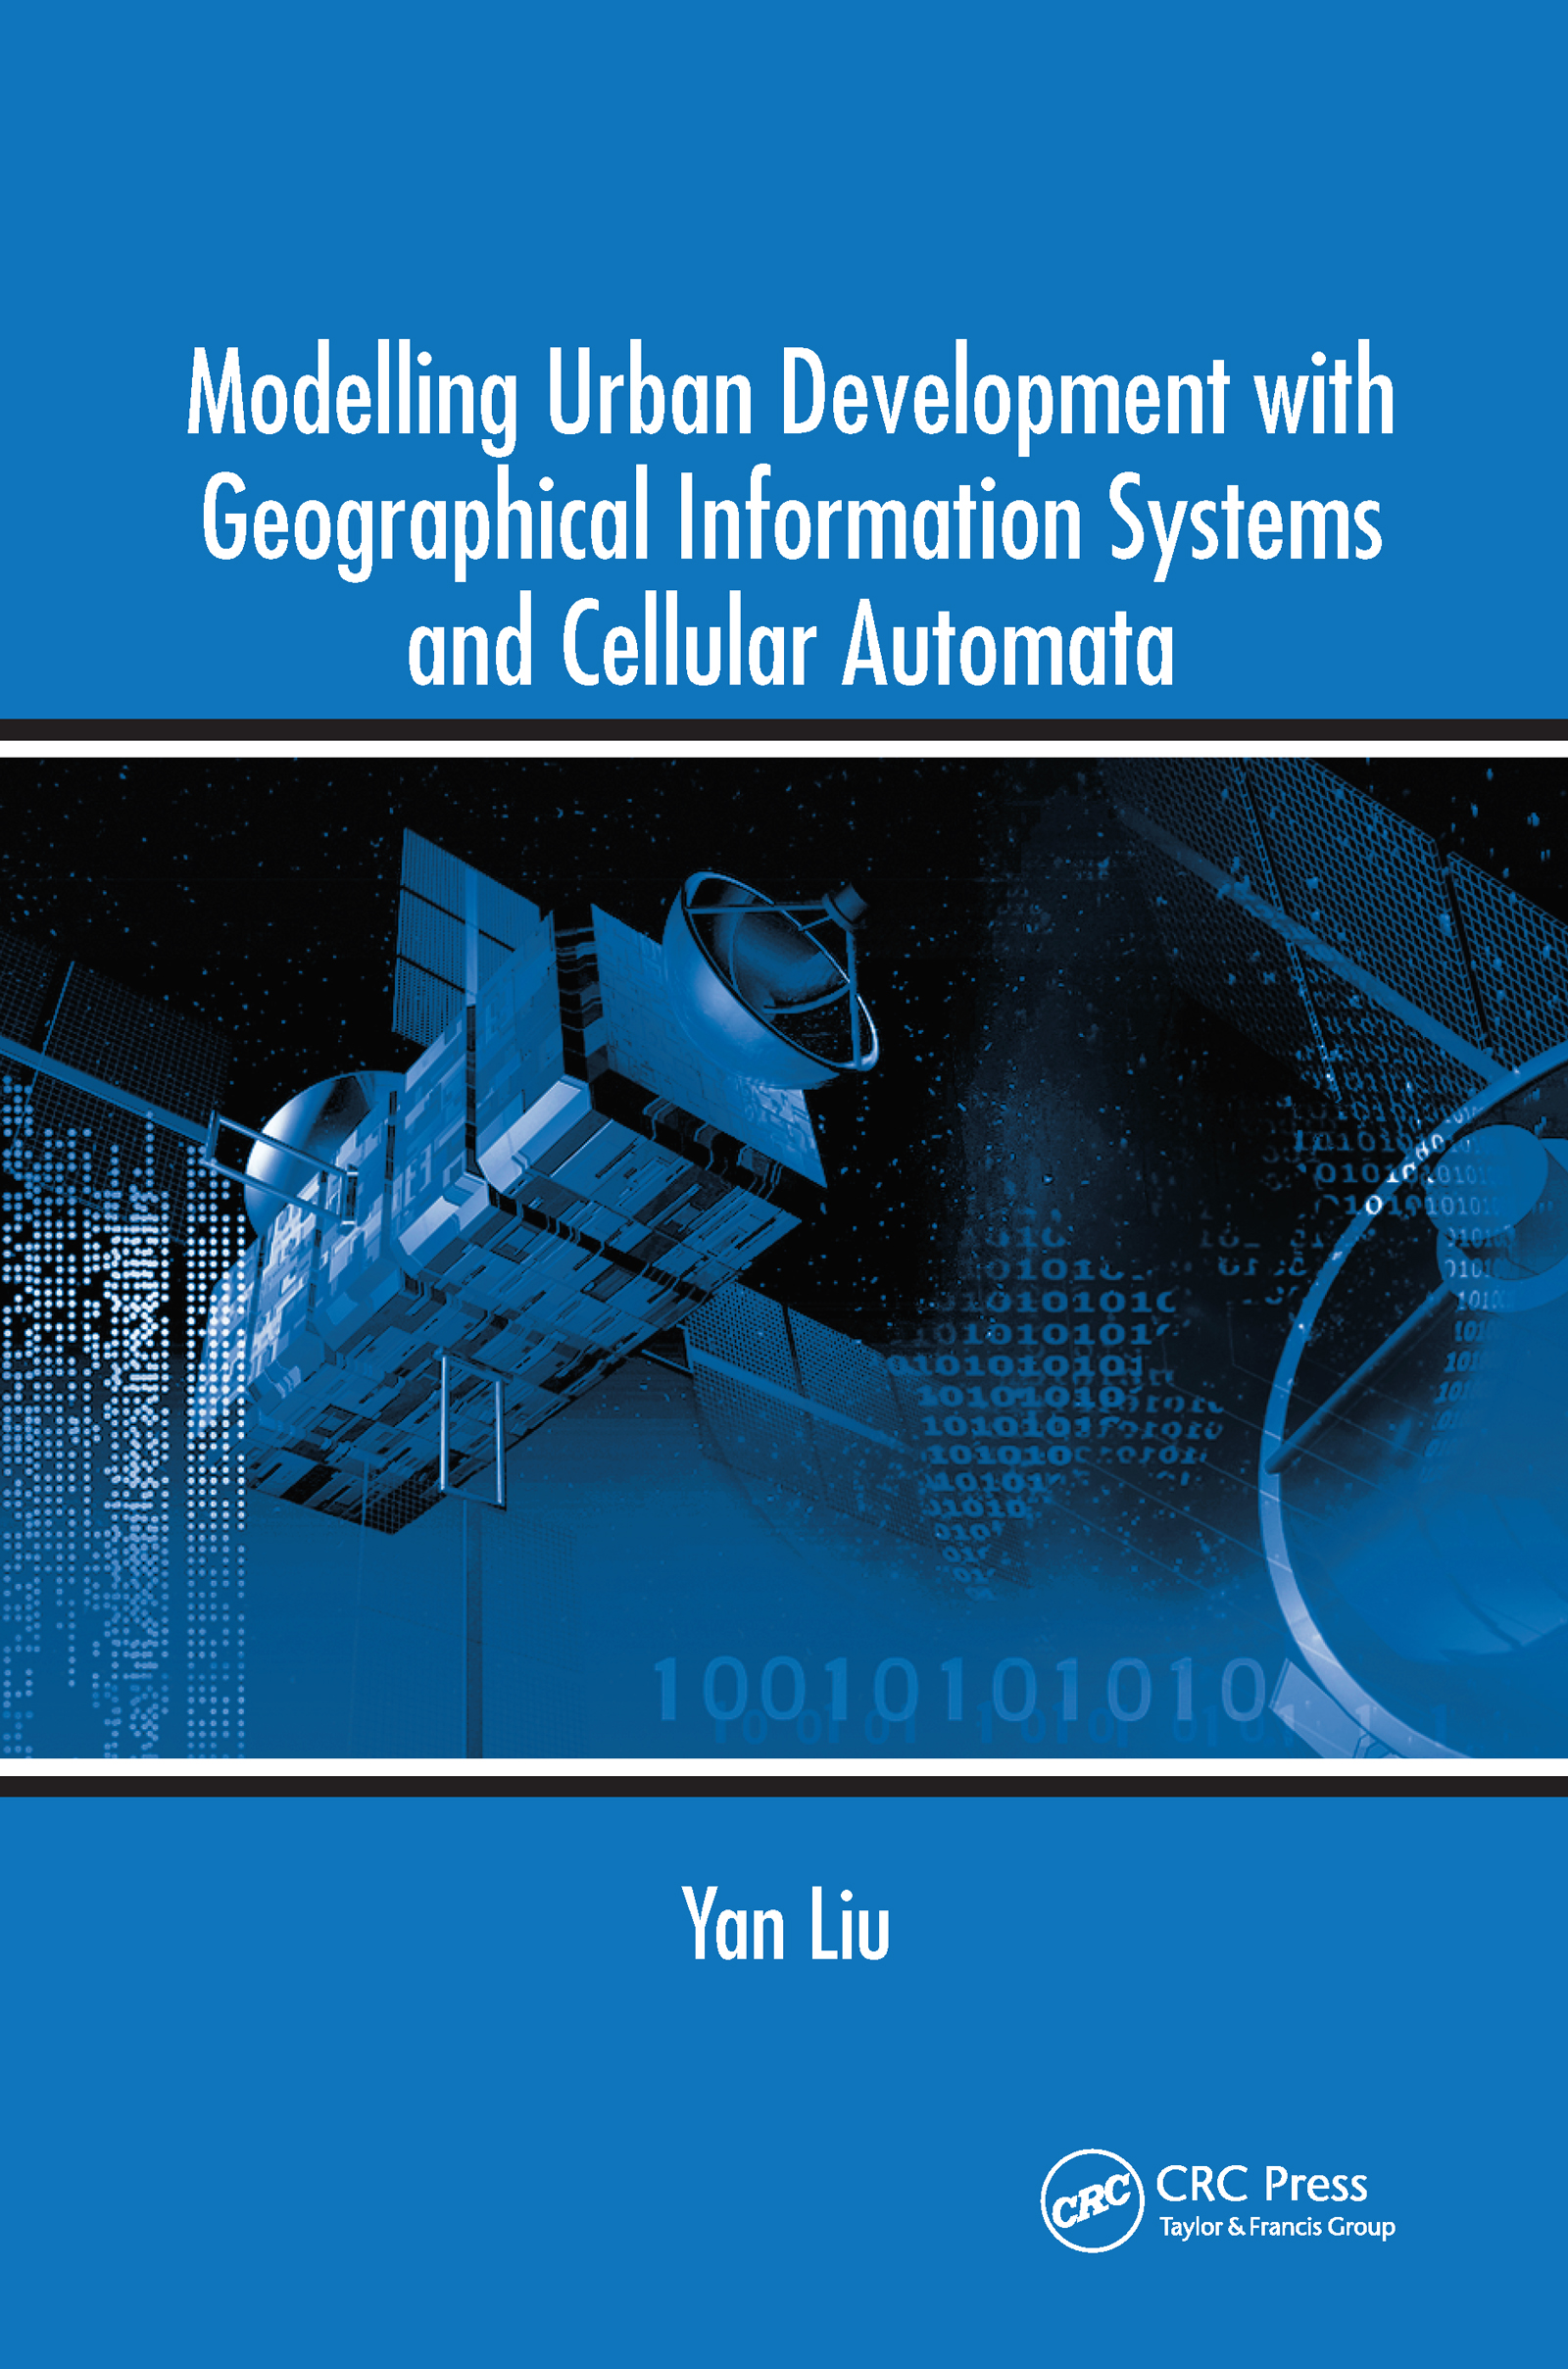 Modelling Urban Development with Geographical Information Systems and Cellular Automata: 1st Edition (Hardback) book cover